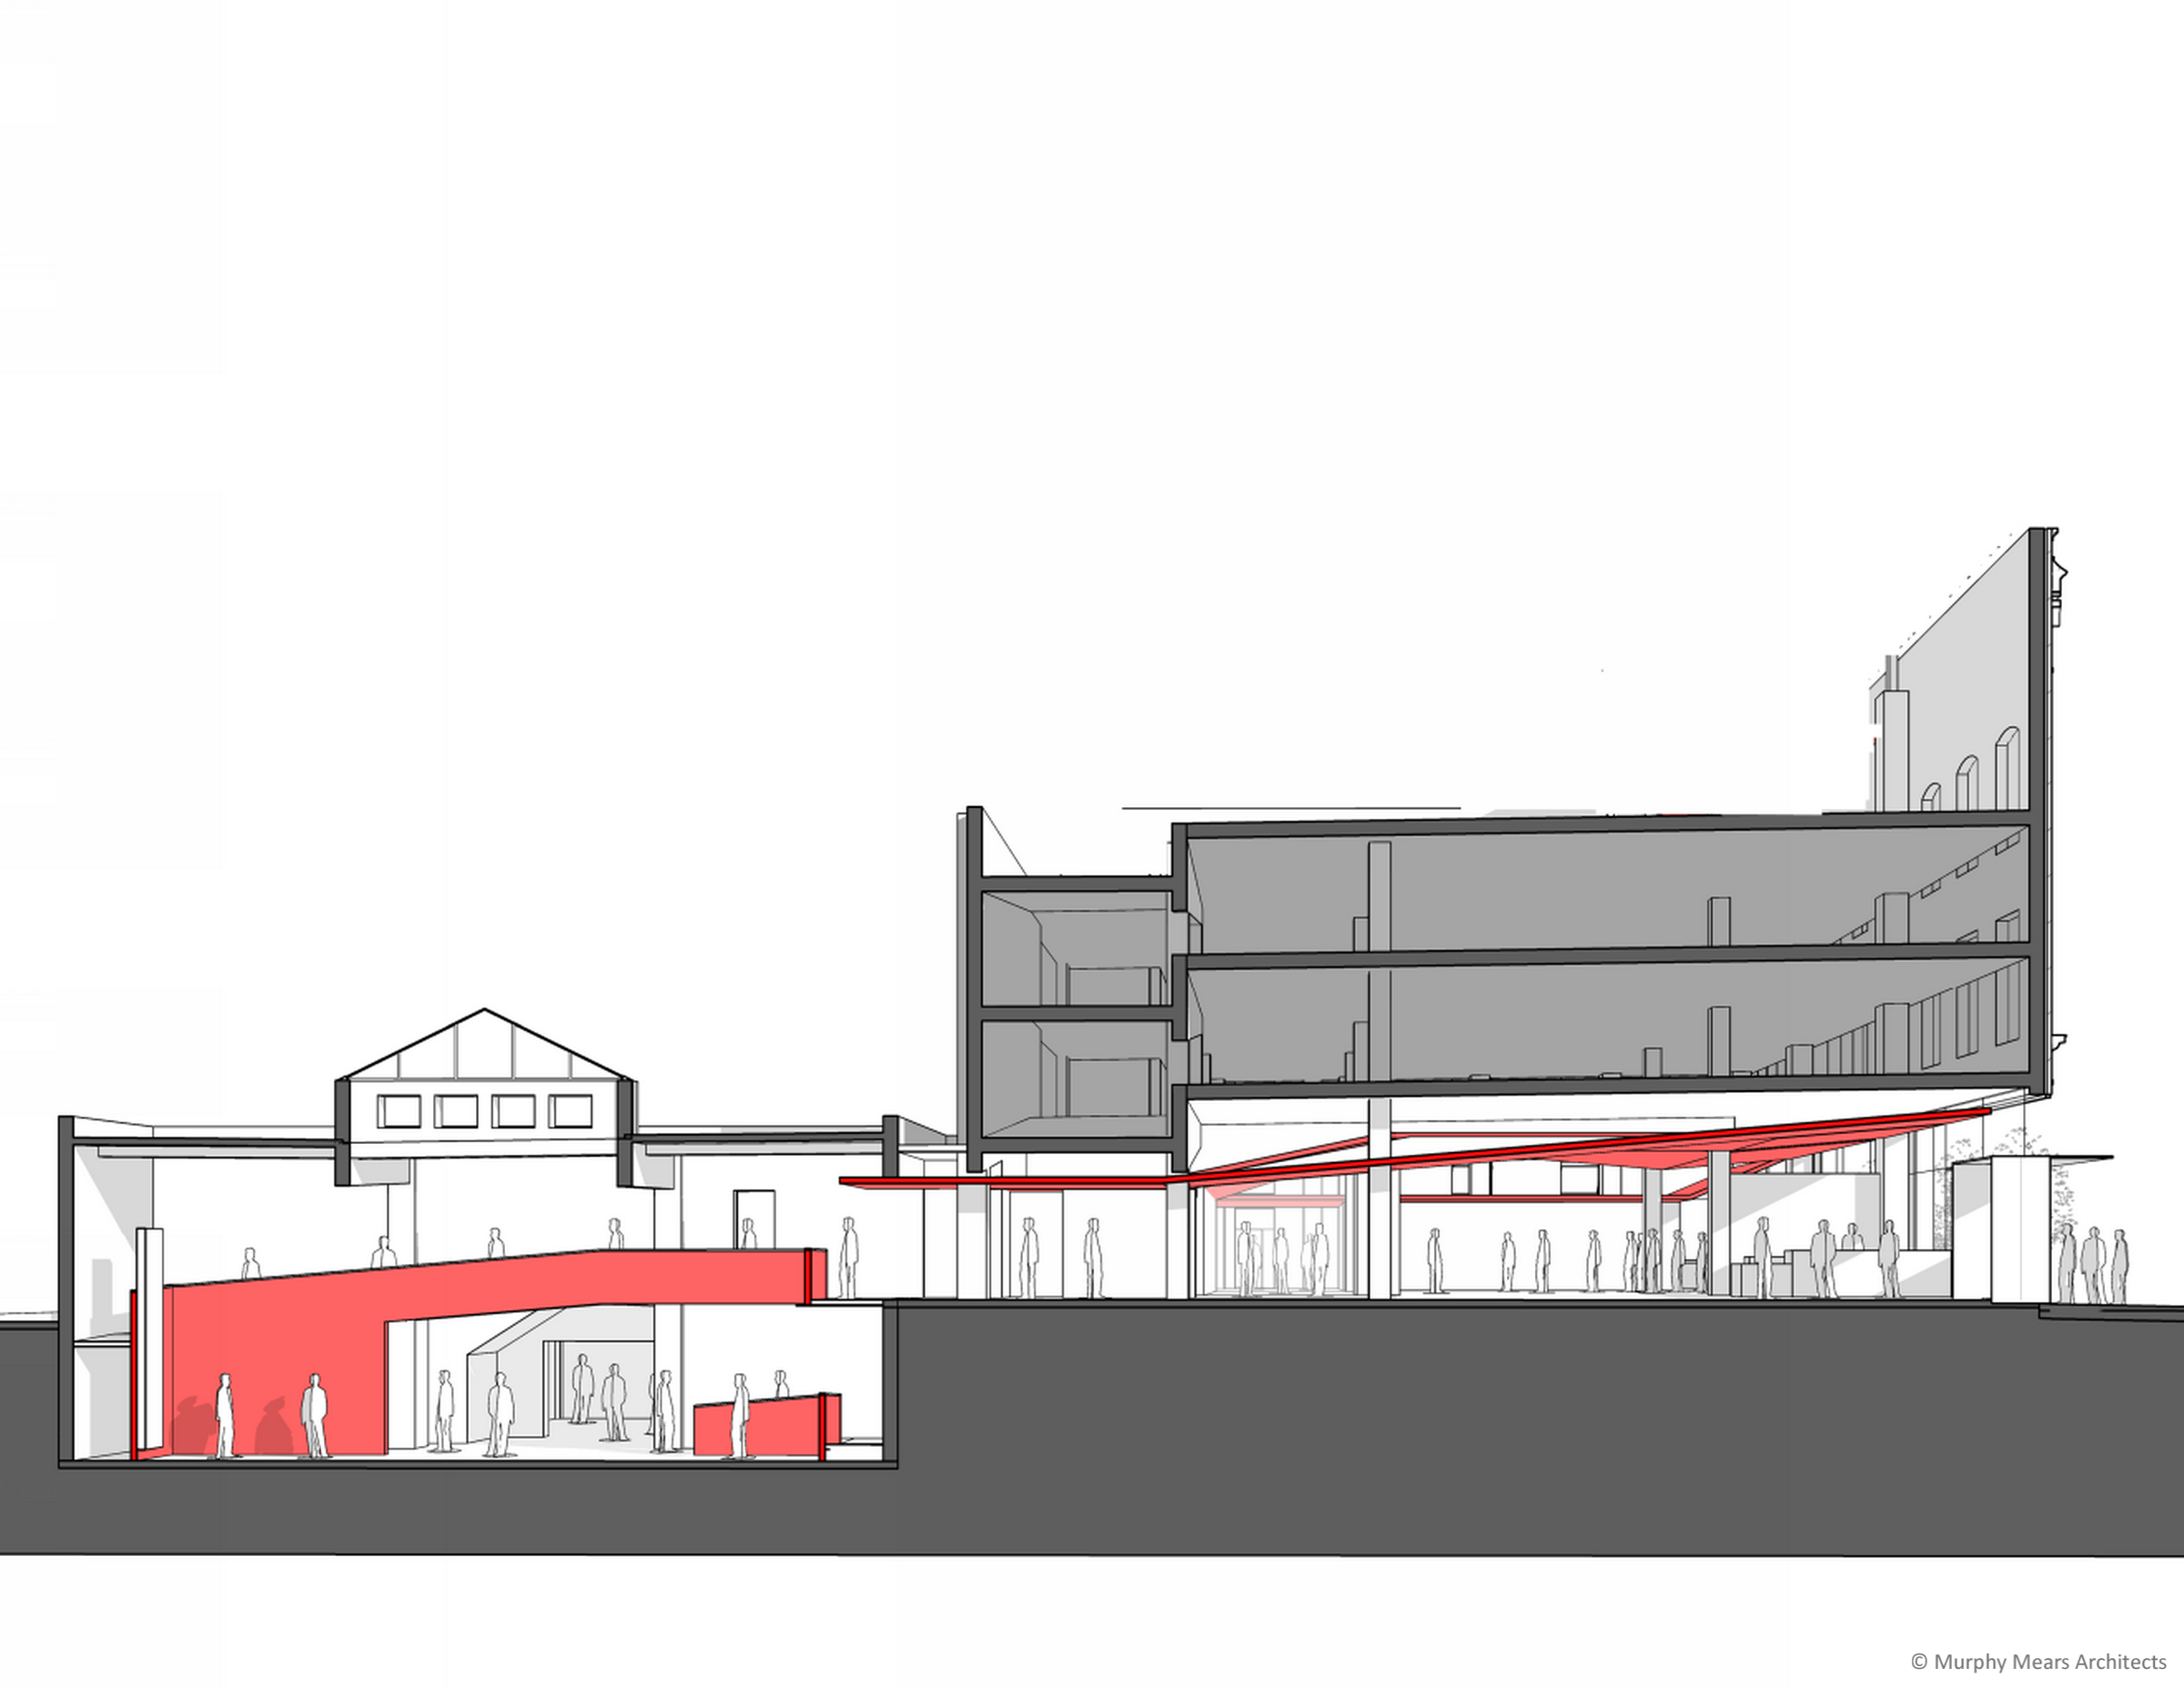 Architecture Center Houston - Competition Drawing - Overall Building Section through street-front Phase I and Boiler Room Phase II.